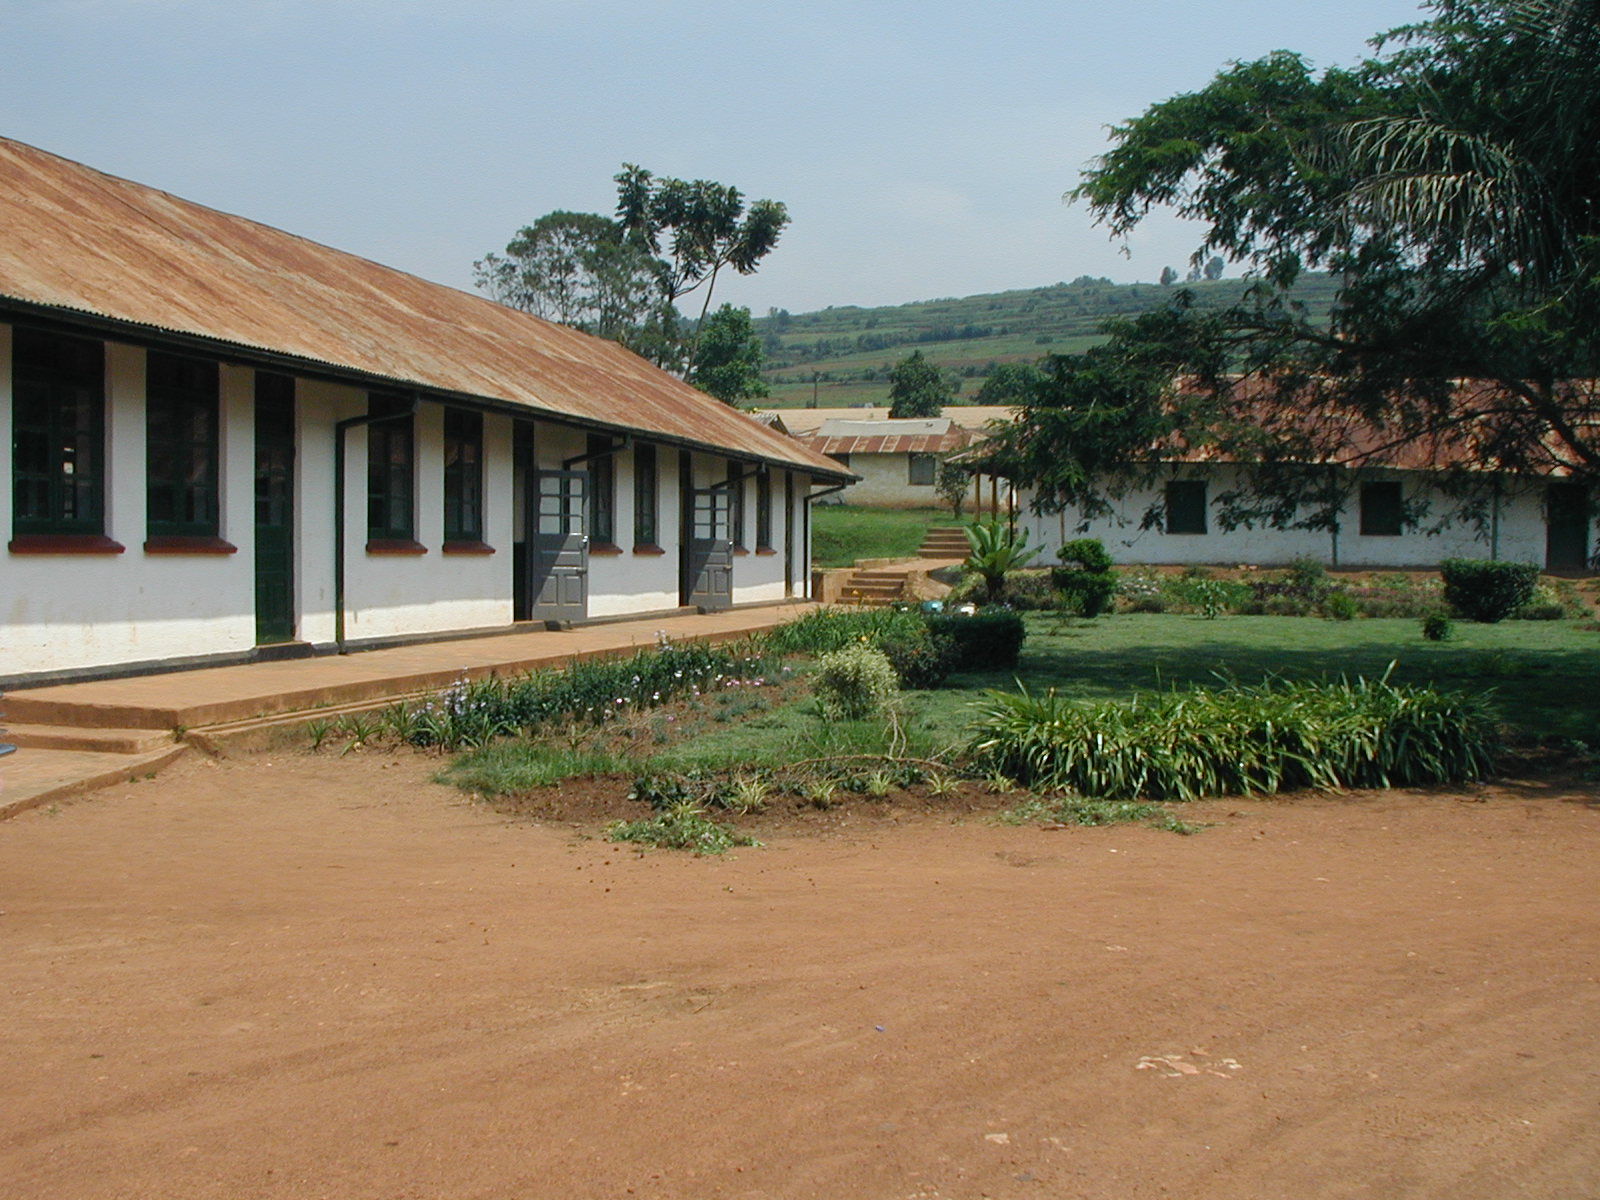 Bwankosya House, Kigezi High School